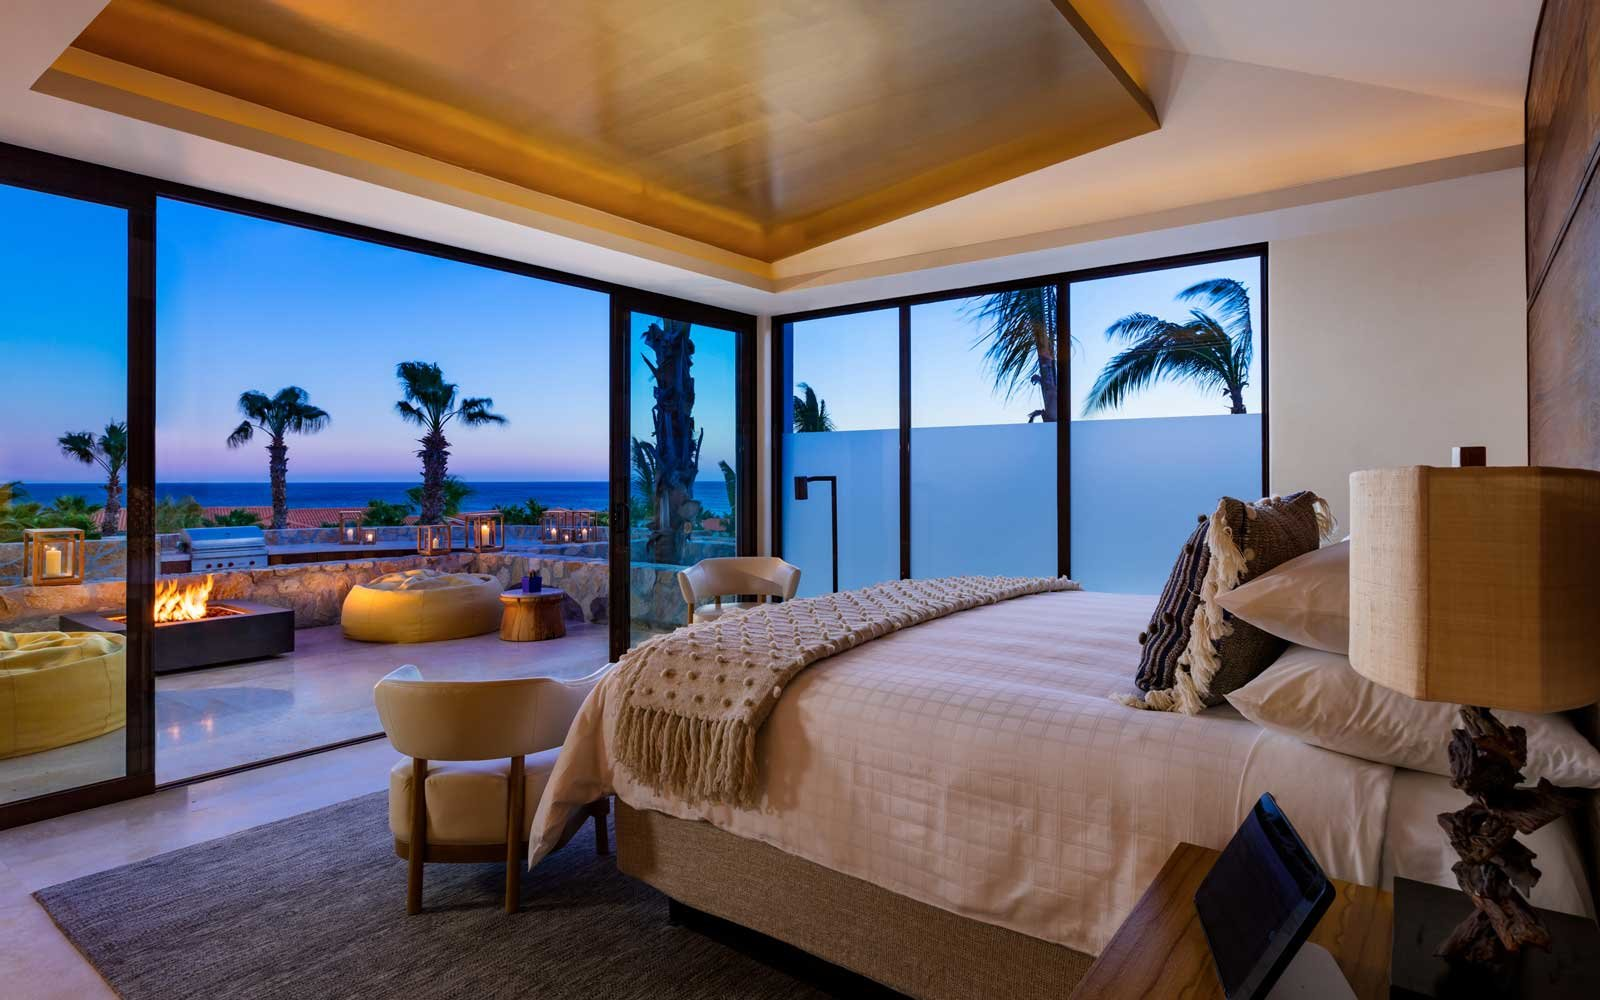 Top Romantic Resorts: One&Only Palmilla, Mexico